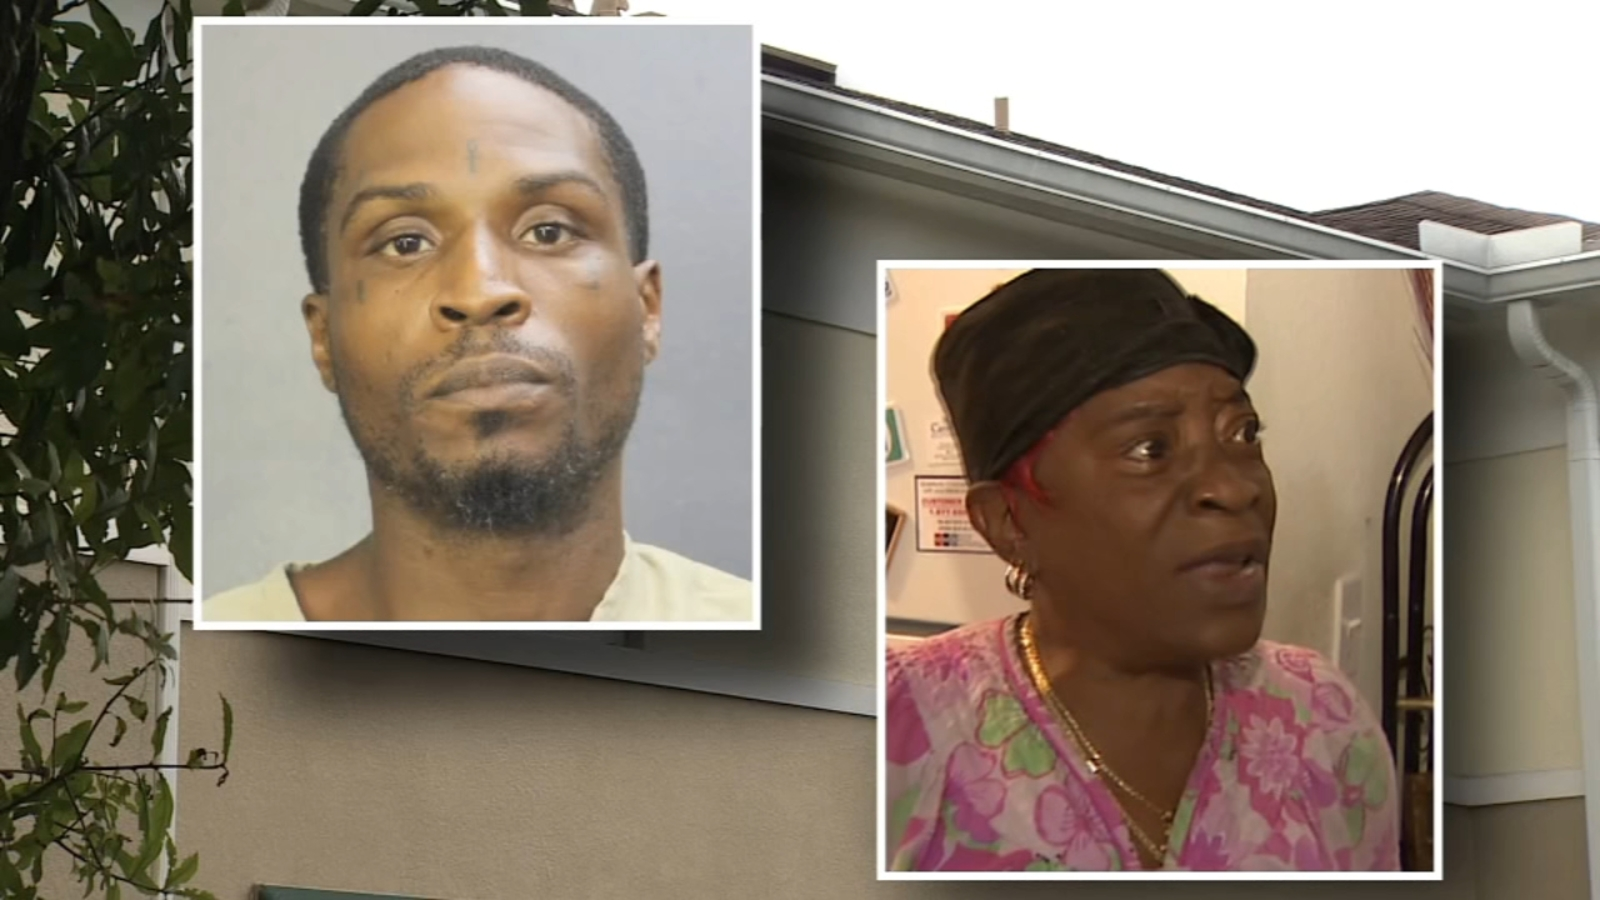 61-year-old woman fights off home intruder